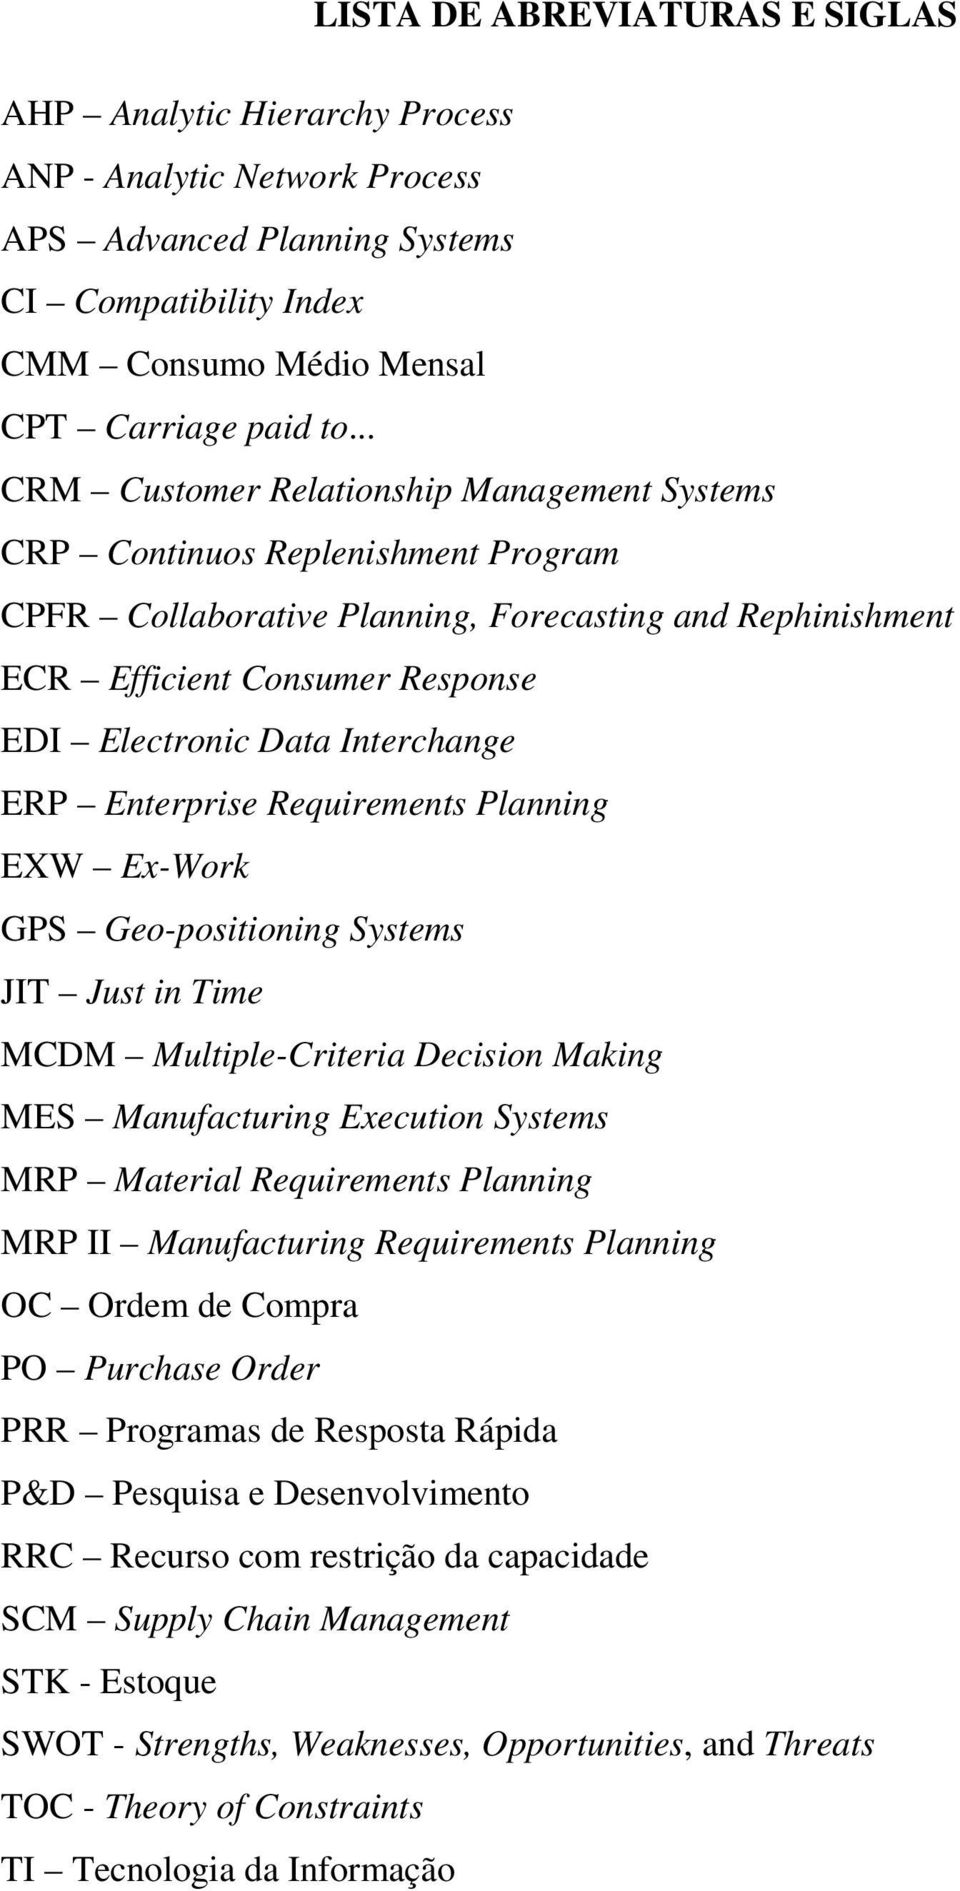 Interchange ERP Enterprise Requirements Planning EXW Ex-Work GPS Geo-positioning Systems JIT Just in Time MCDM Multiple-Criteria Decision Making MES Manufacturing Execution Systems MRP Material